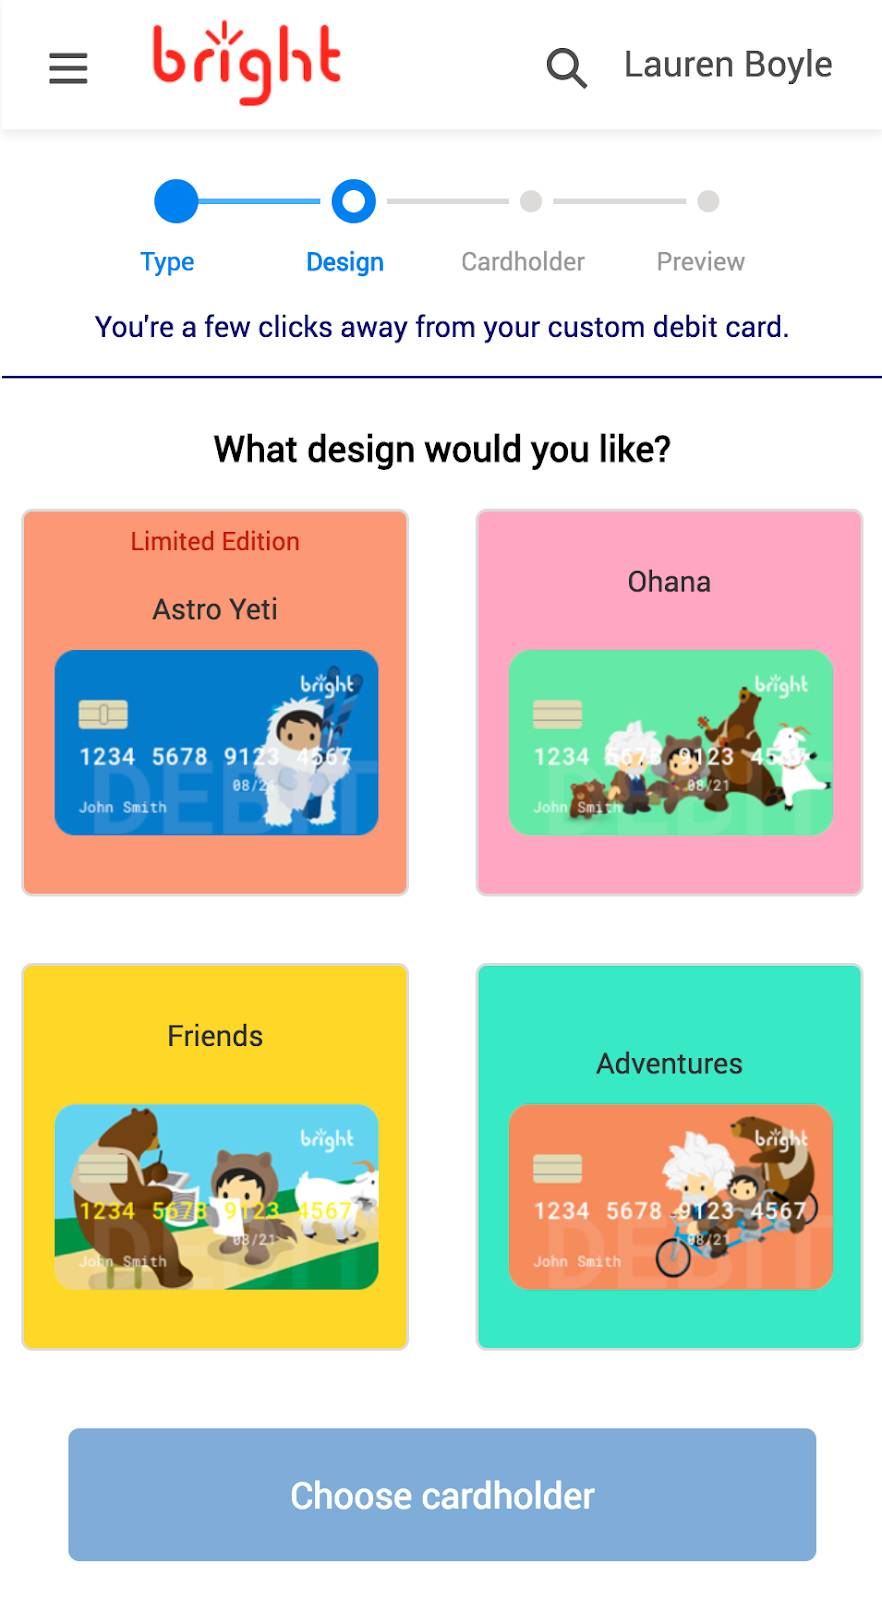 A Lightning Flow where you can choose from various options for a credit card design, showing multiple designs you can select from